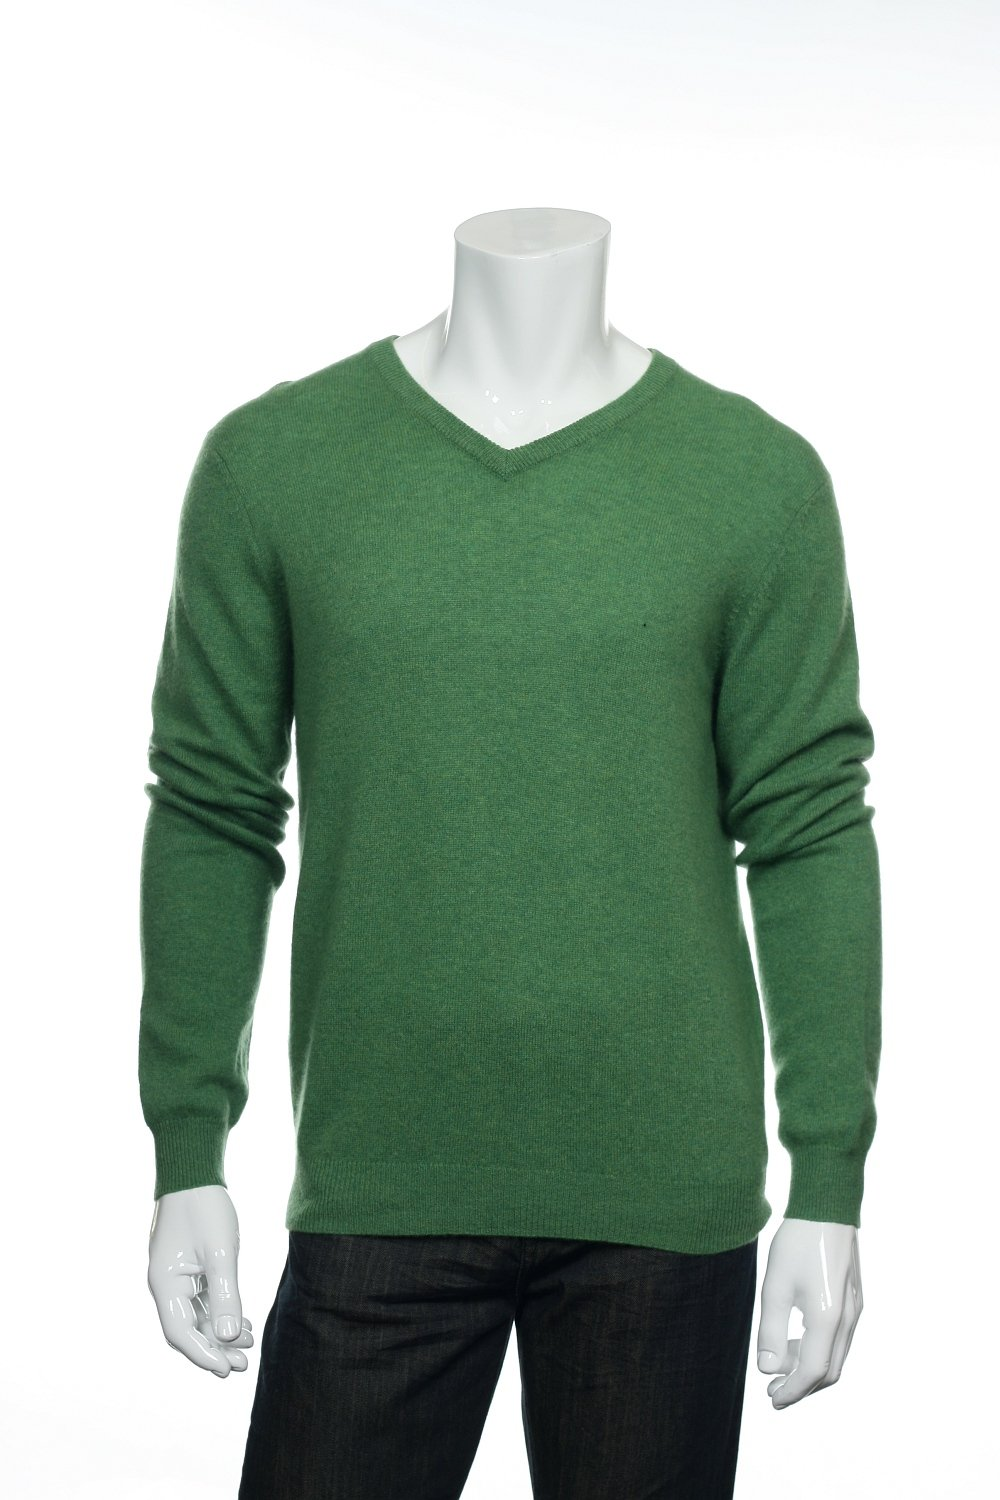 Club Room Green V-Neck Sweater, Size Large